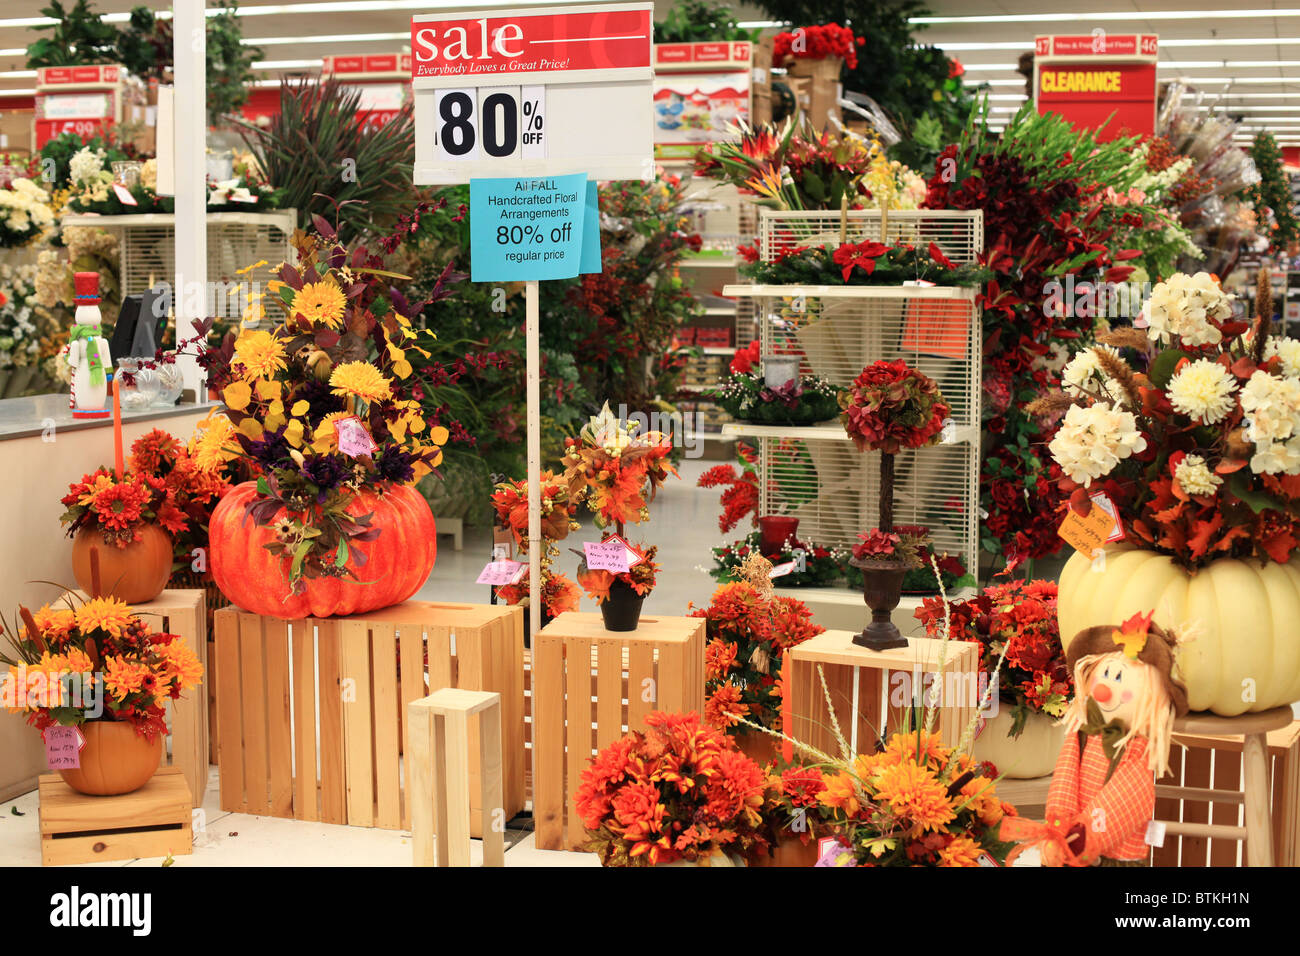 halloween decorations for sale in a canadian store - Halloween Decorations On Sale